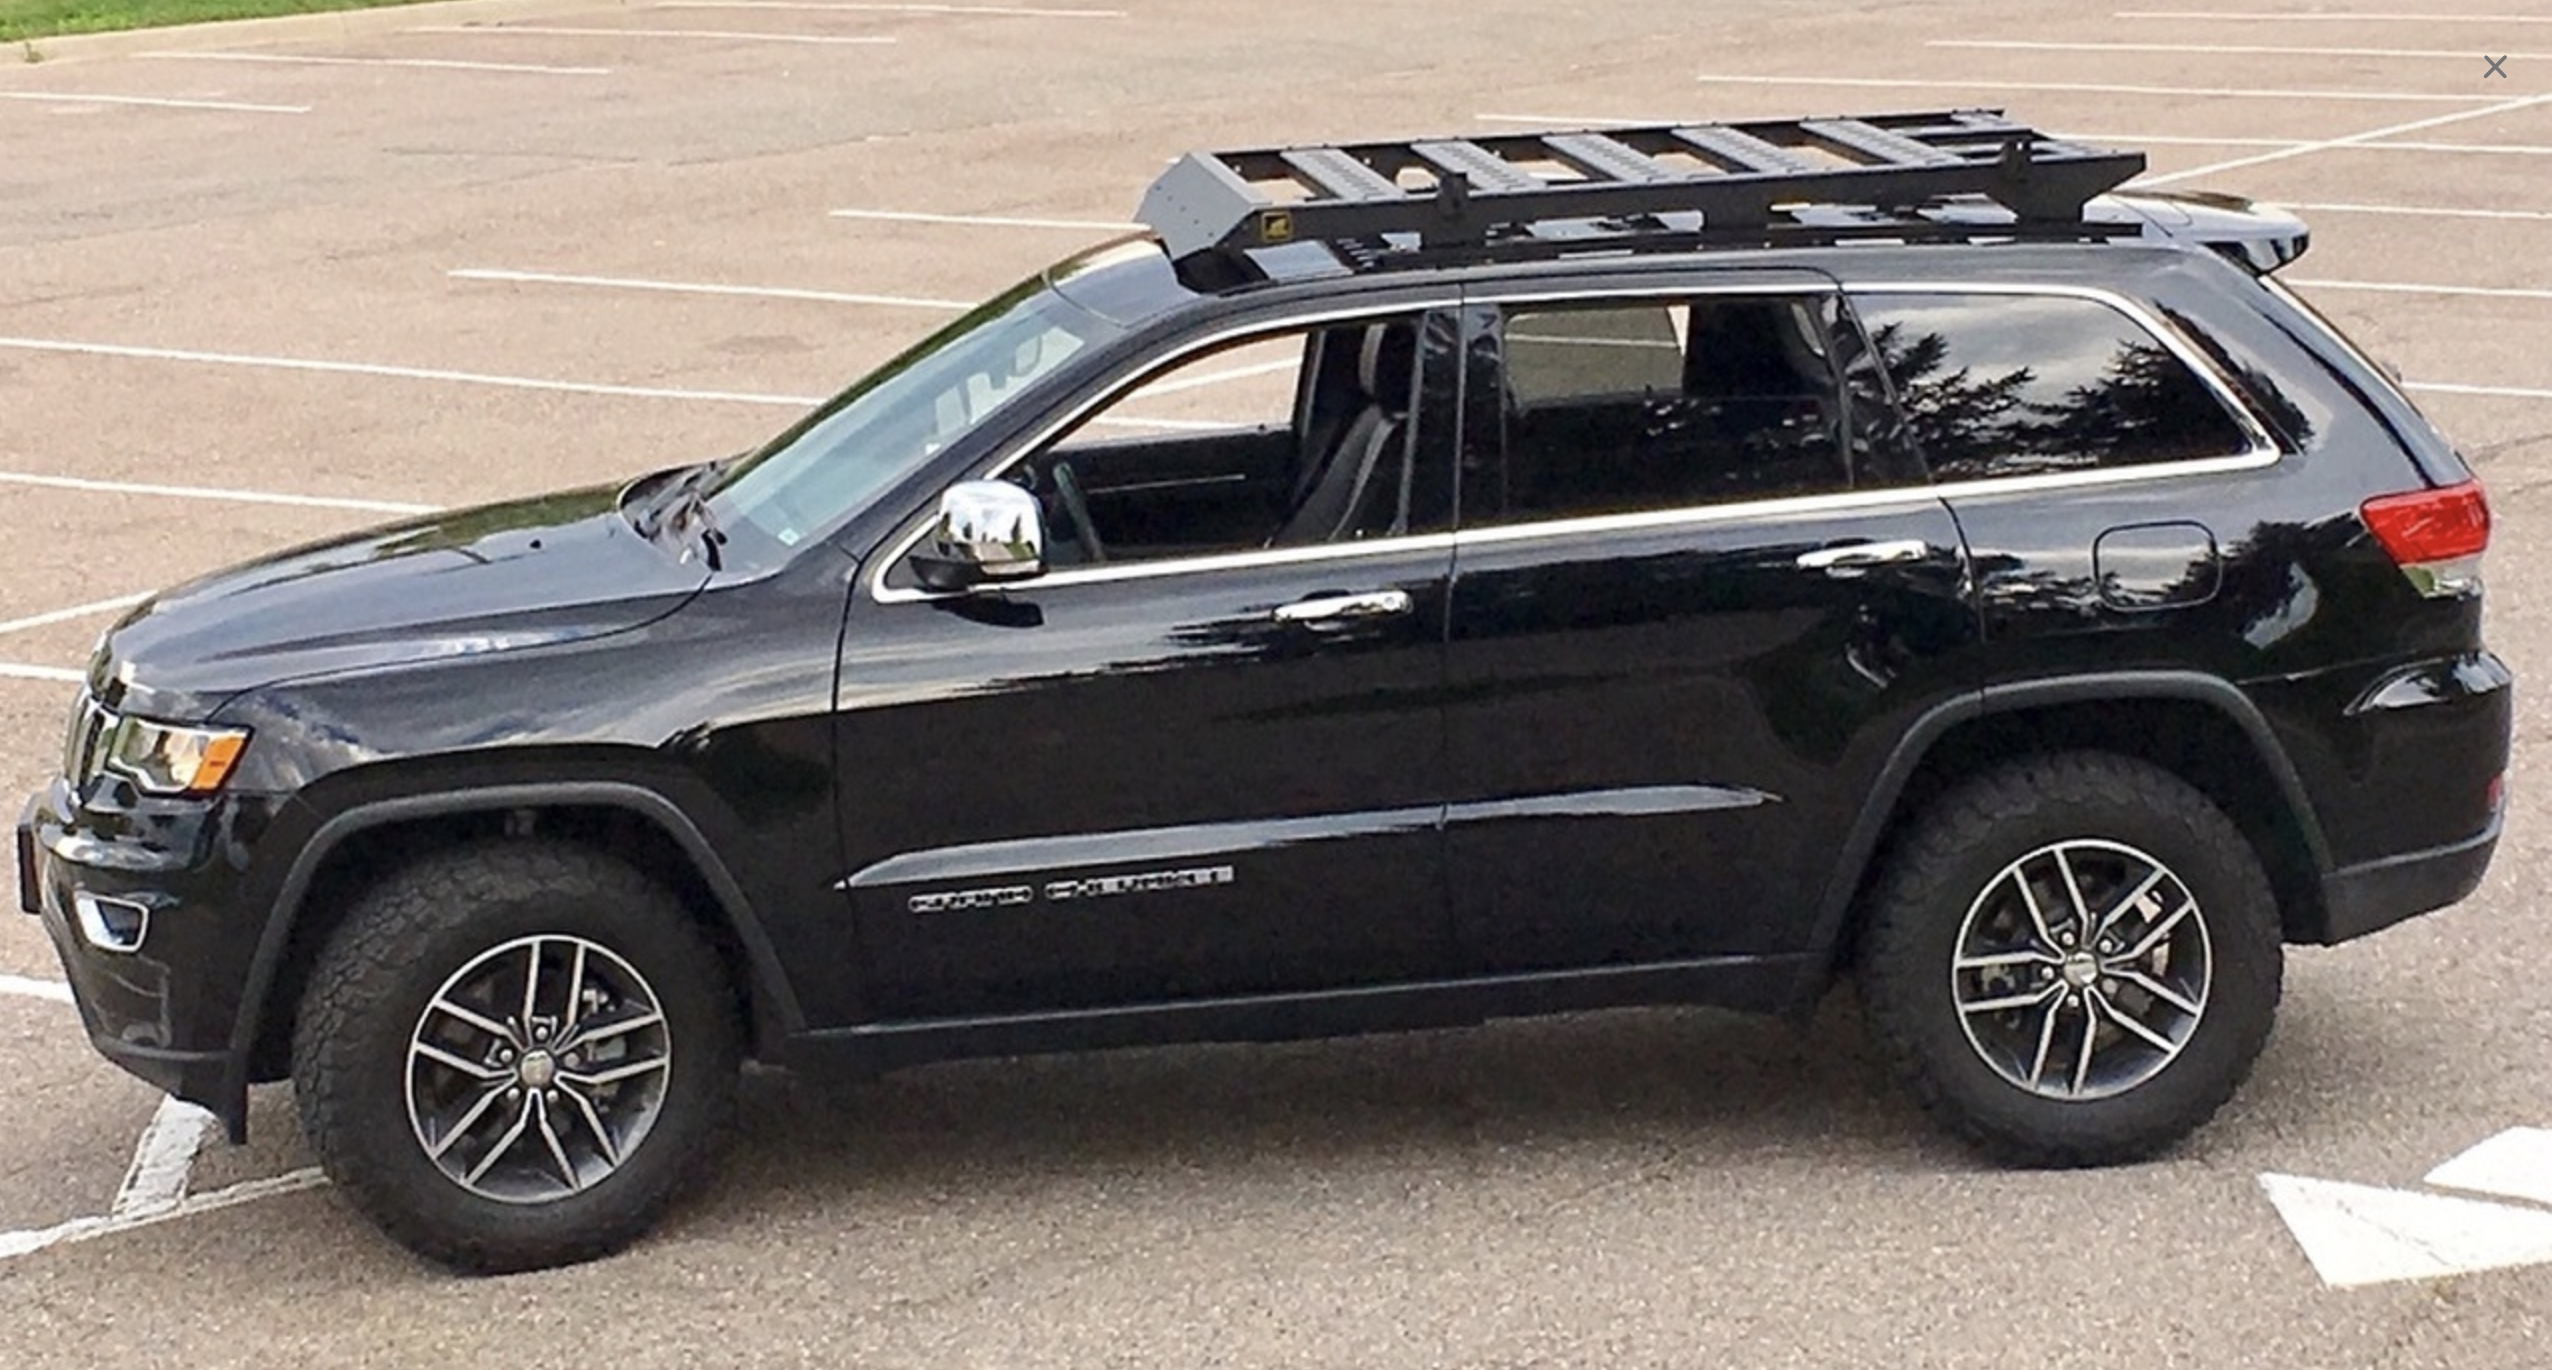 offroad animal roof rack wk2 jeep